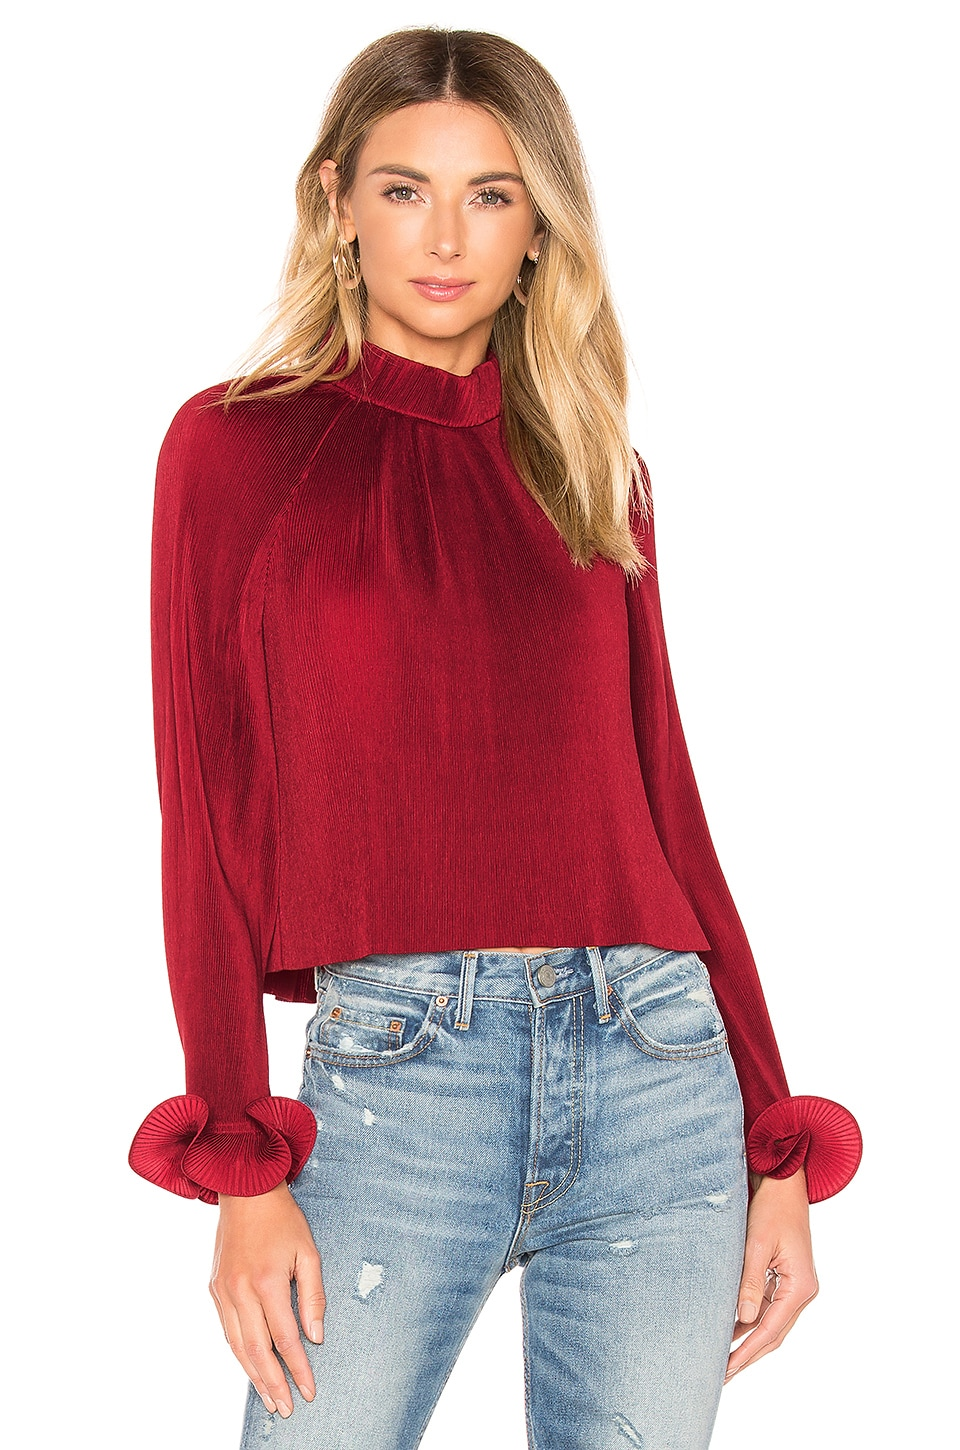 Tibi Pleated Top in Cherry Red